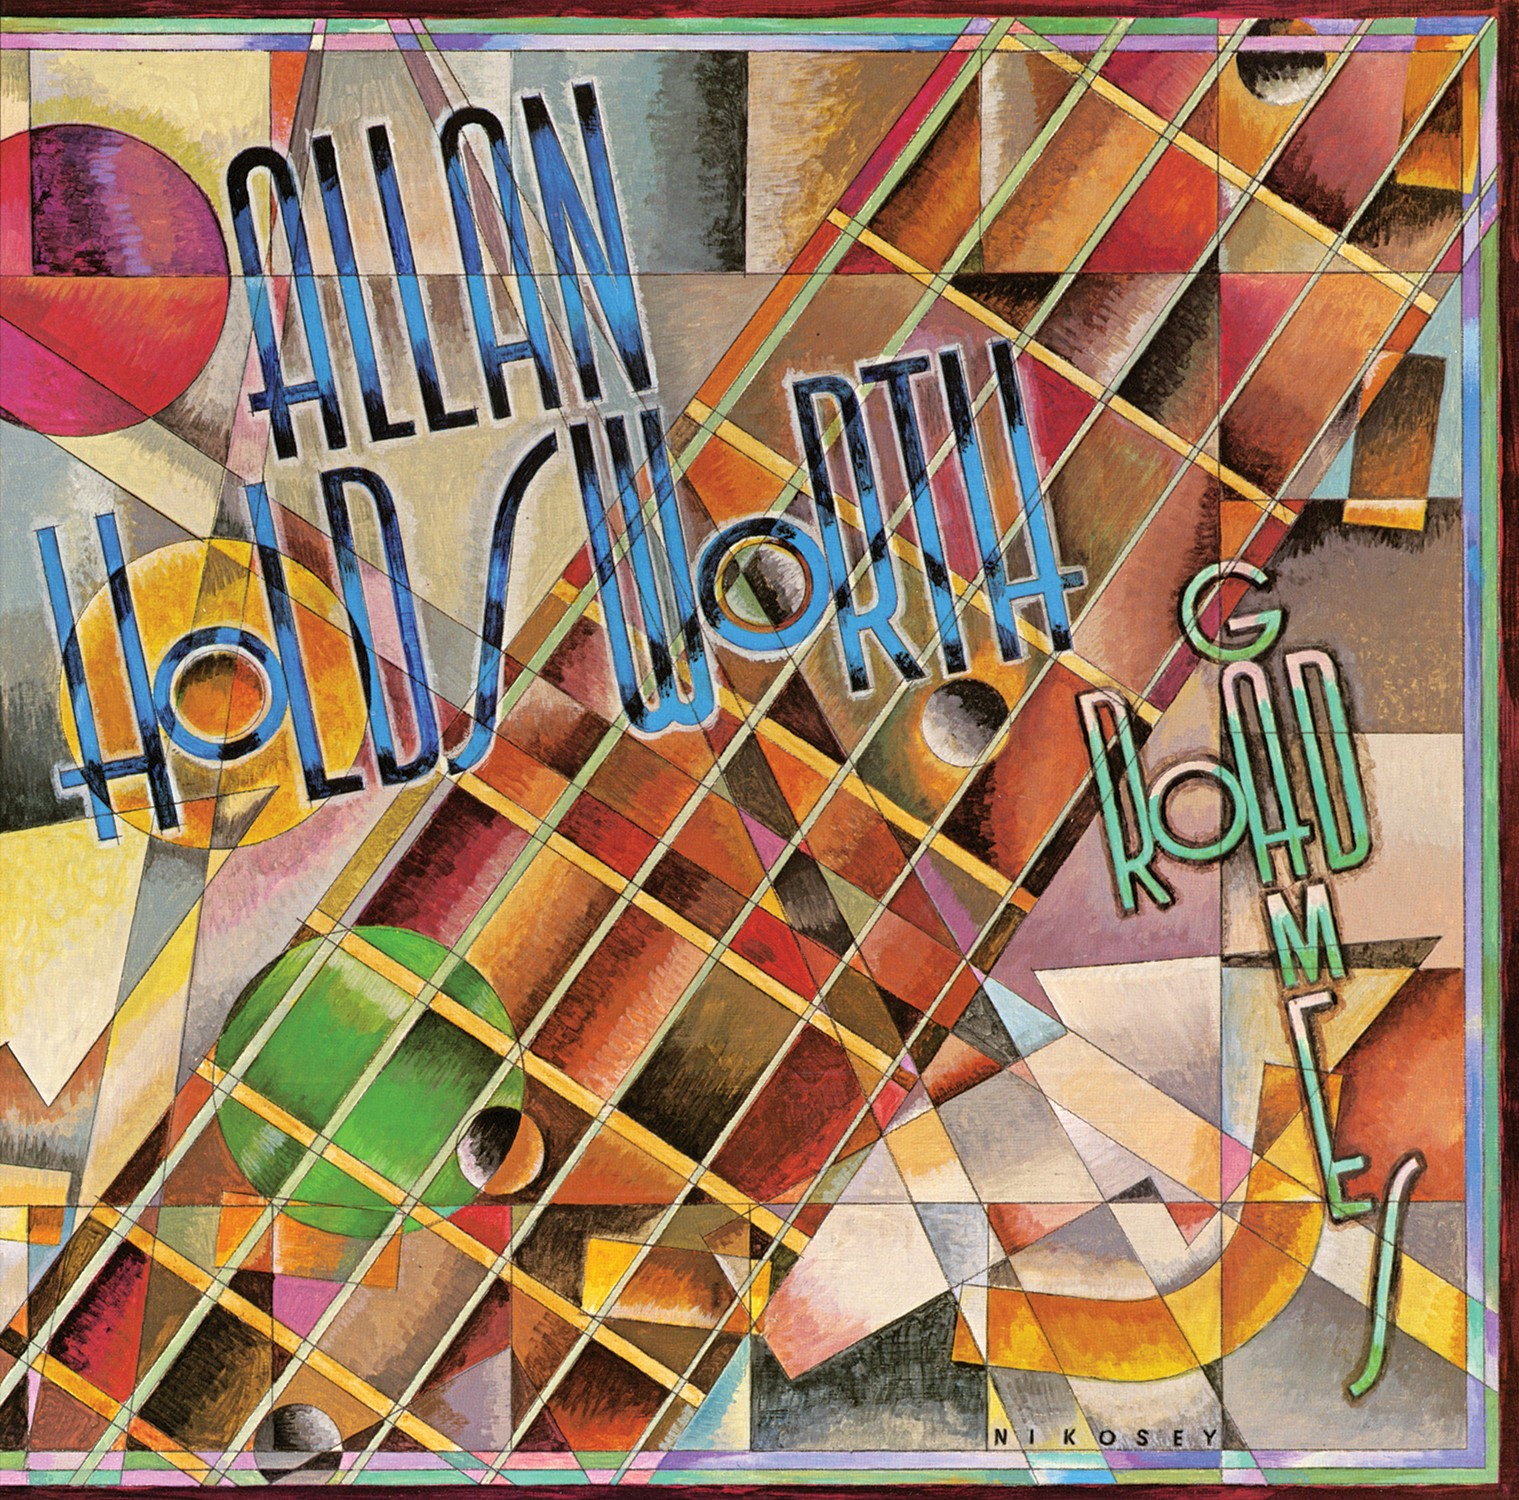 Allan Holdsworth - Road Games [RSD Drops Sep 2020]